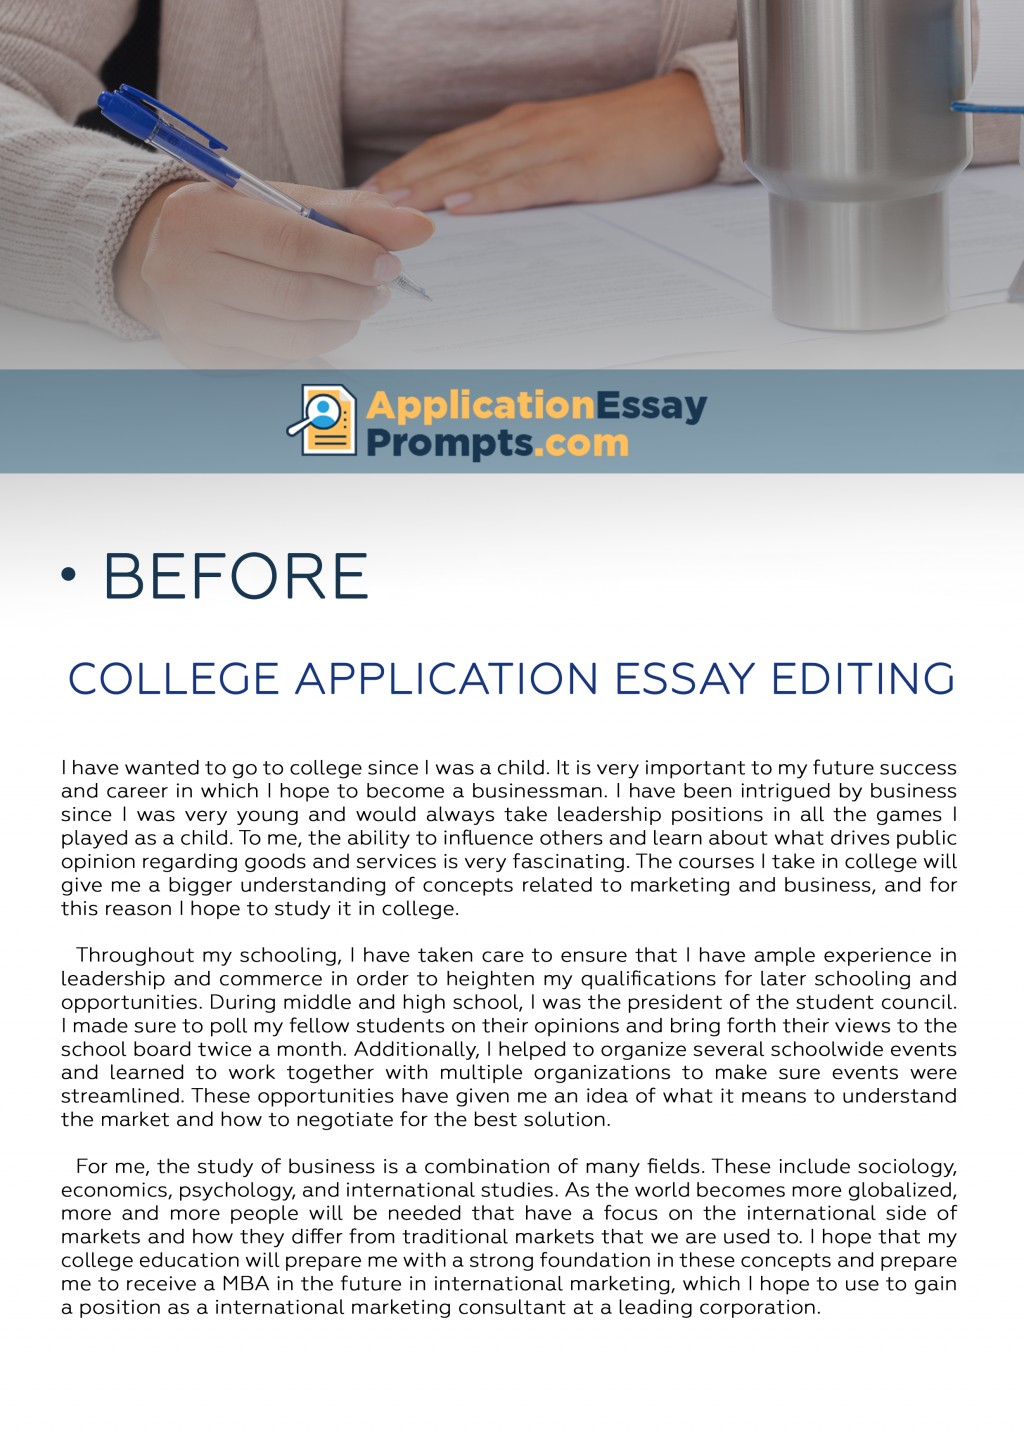 019 College Essay Editing Before Amazing Services Online Jobs Checklist Large